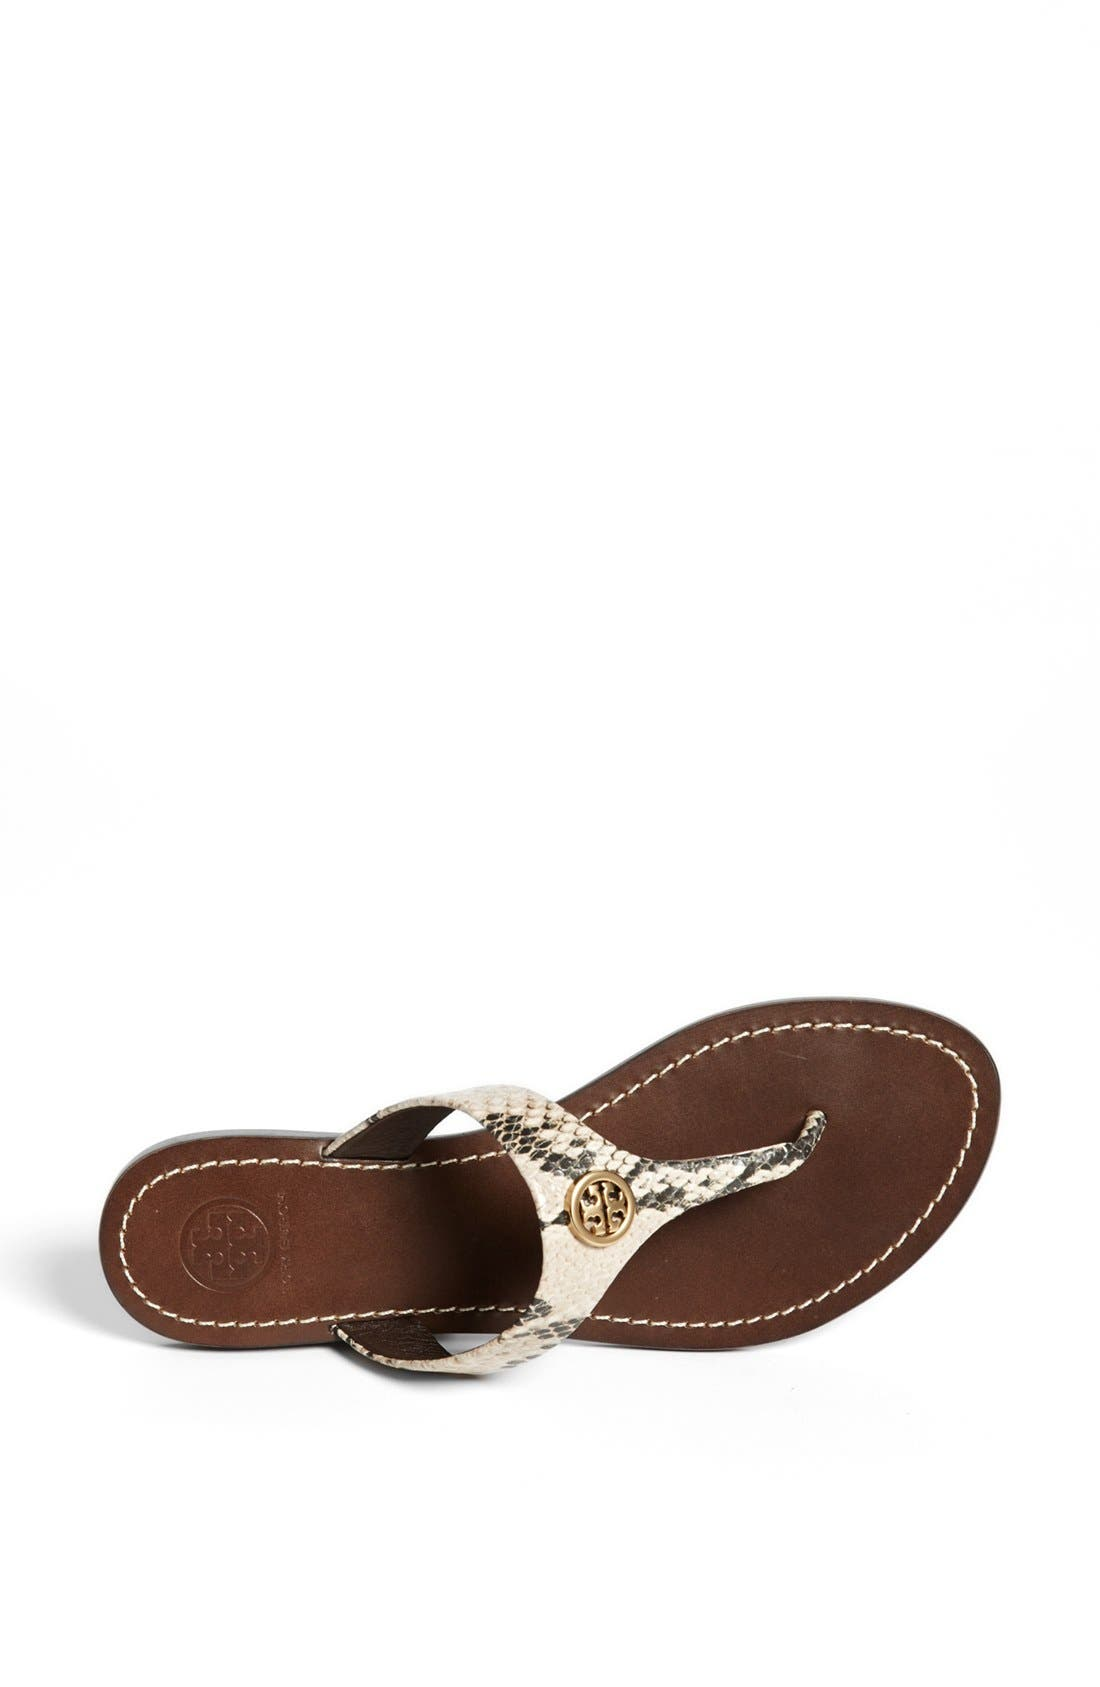 Alternate Image 3  - Tory Burch 'Cameron' Thong Sandal